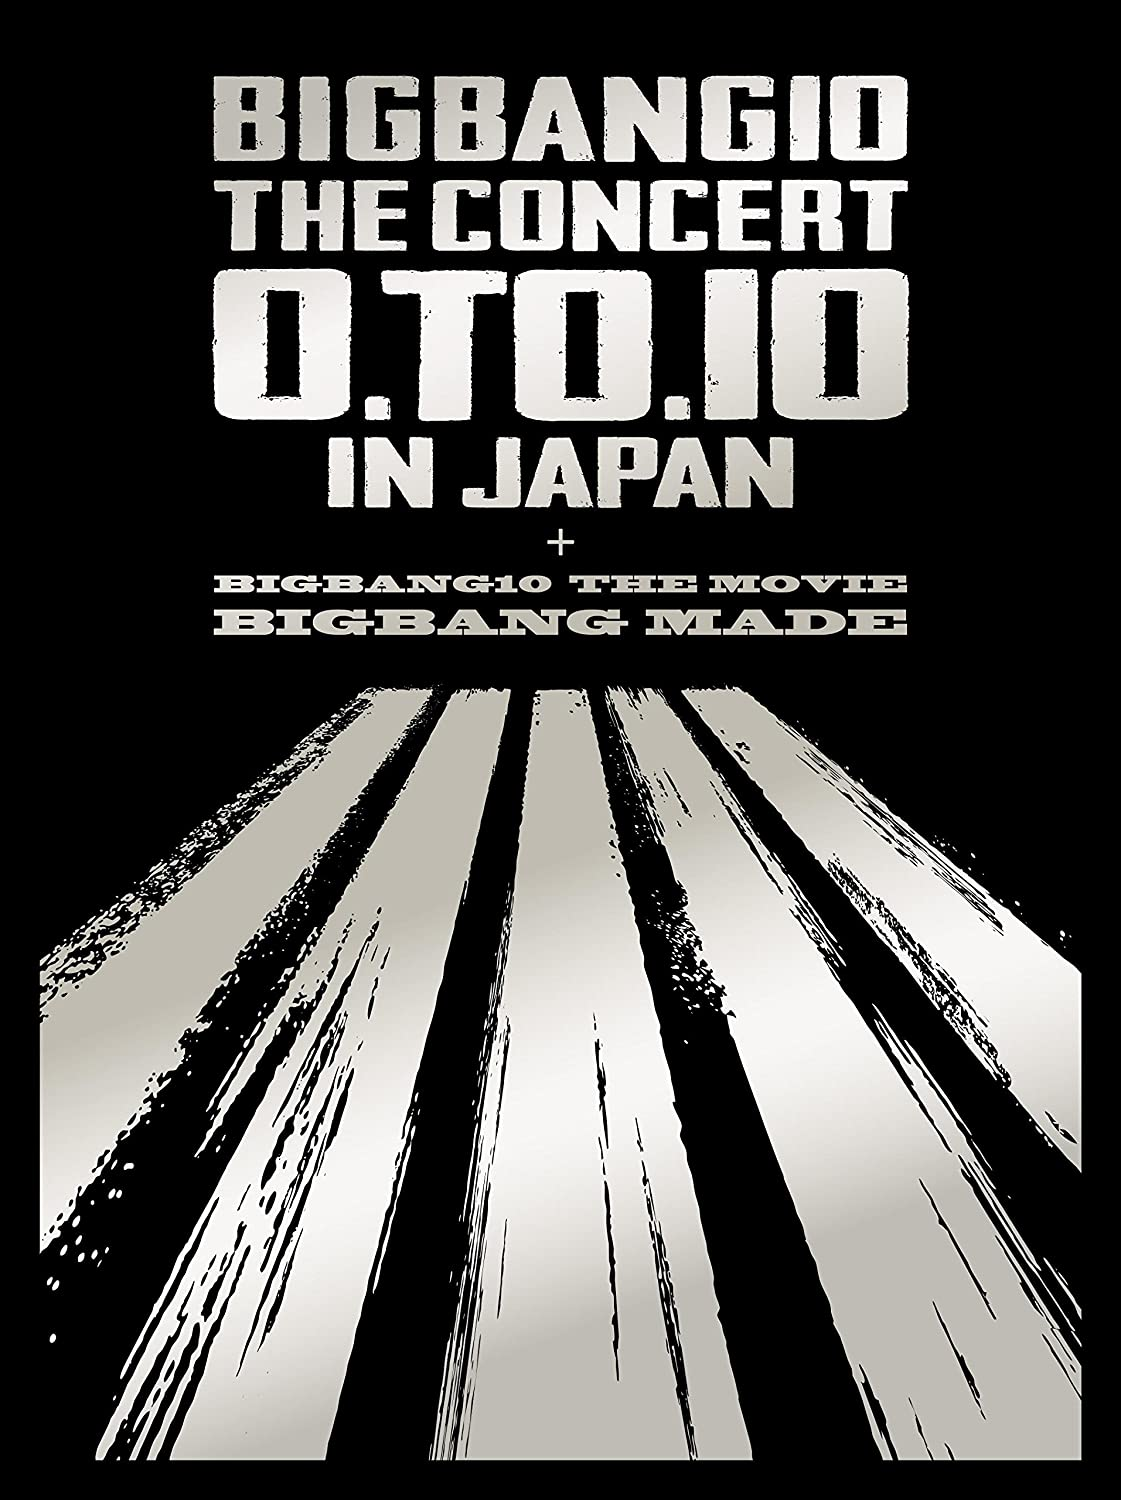 BIGBANG10 THE CONCERT : 0.TO.10 IN JAPAN + BIGBANG10 THE MOVIE BIGBANG MADE(Blu-ray(3枚組)+LIVE CD(2枚組)+PHOTO BOOK+スマプラムービー&ミュージック])(-DELUXE EDITION-) B01J5F2HRO